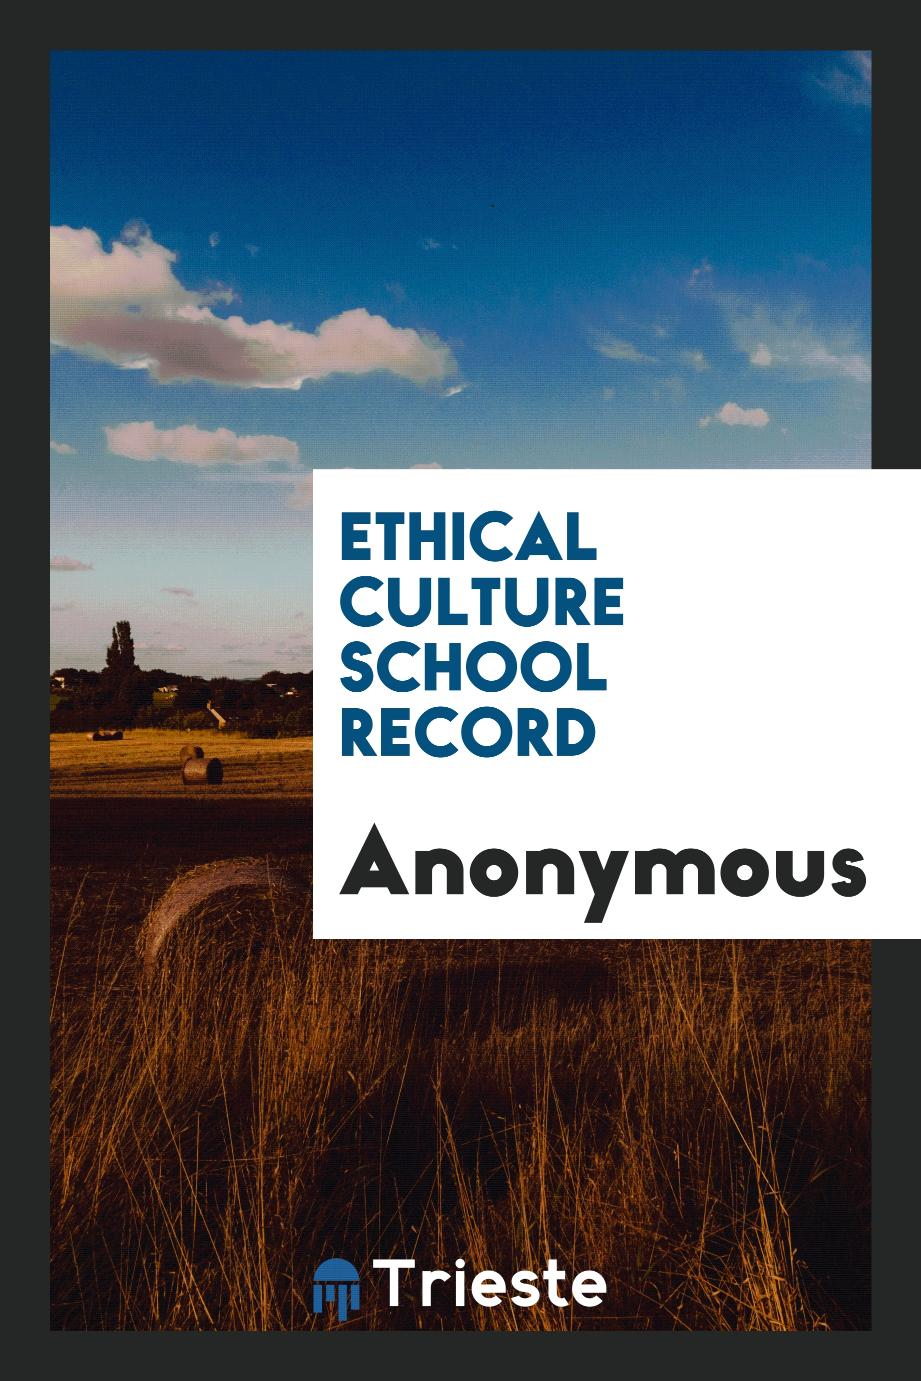 Anonymous - Ethical Culture School Record